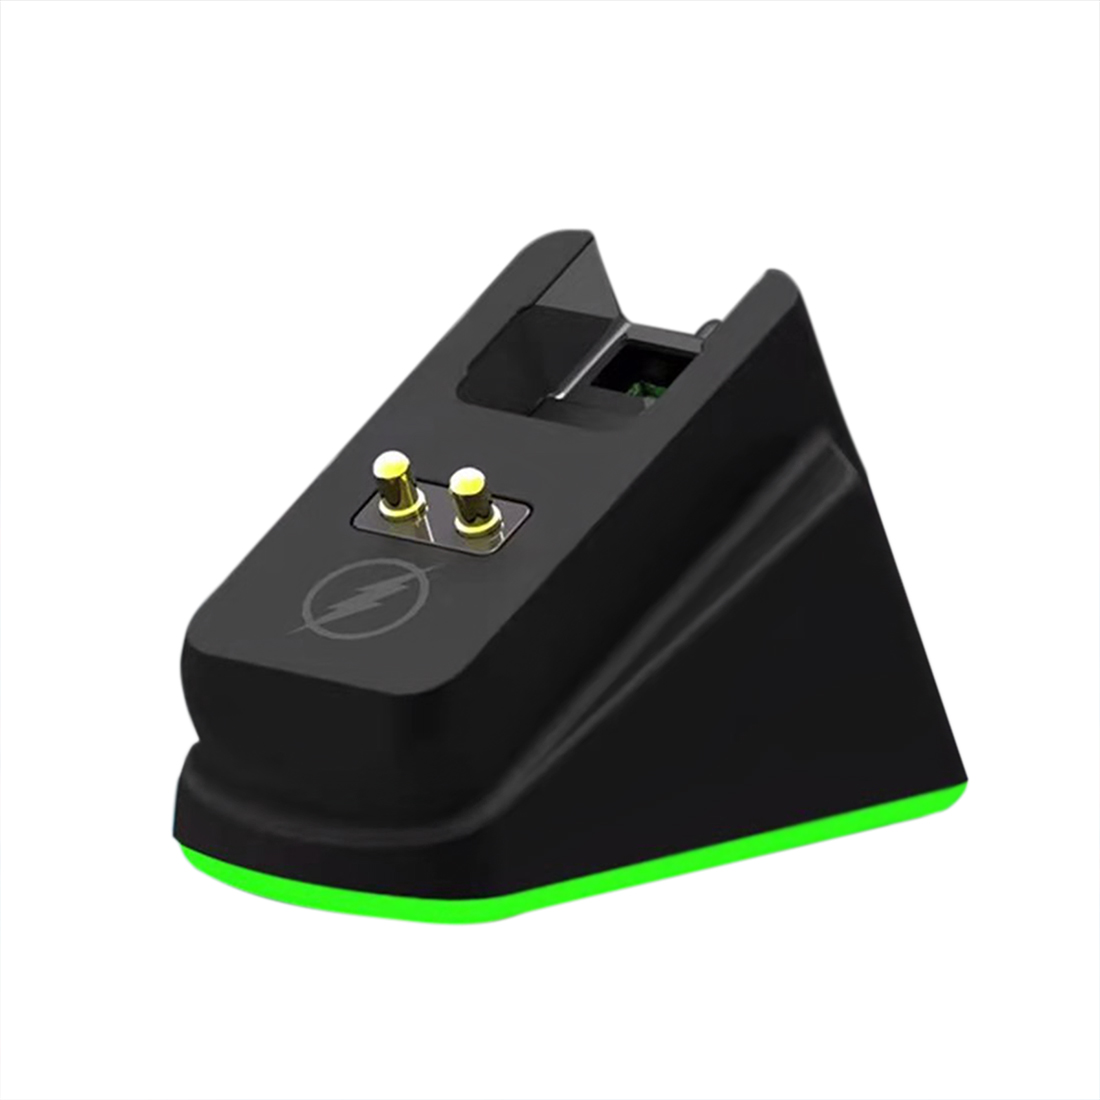 RGB Mouse Charging Dock Chroma for Razer Wireless Mouse Magnetic Dock with Charge Status Anti-Slip Gecko Feet - Black